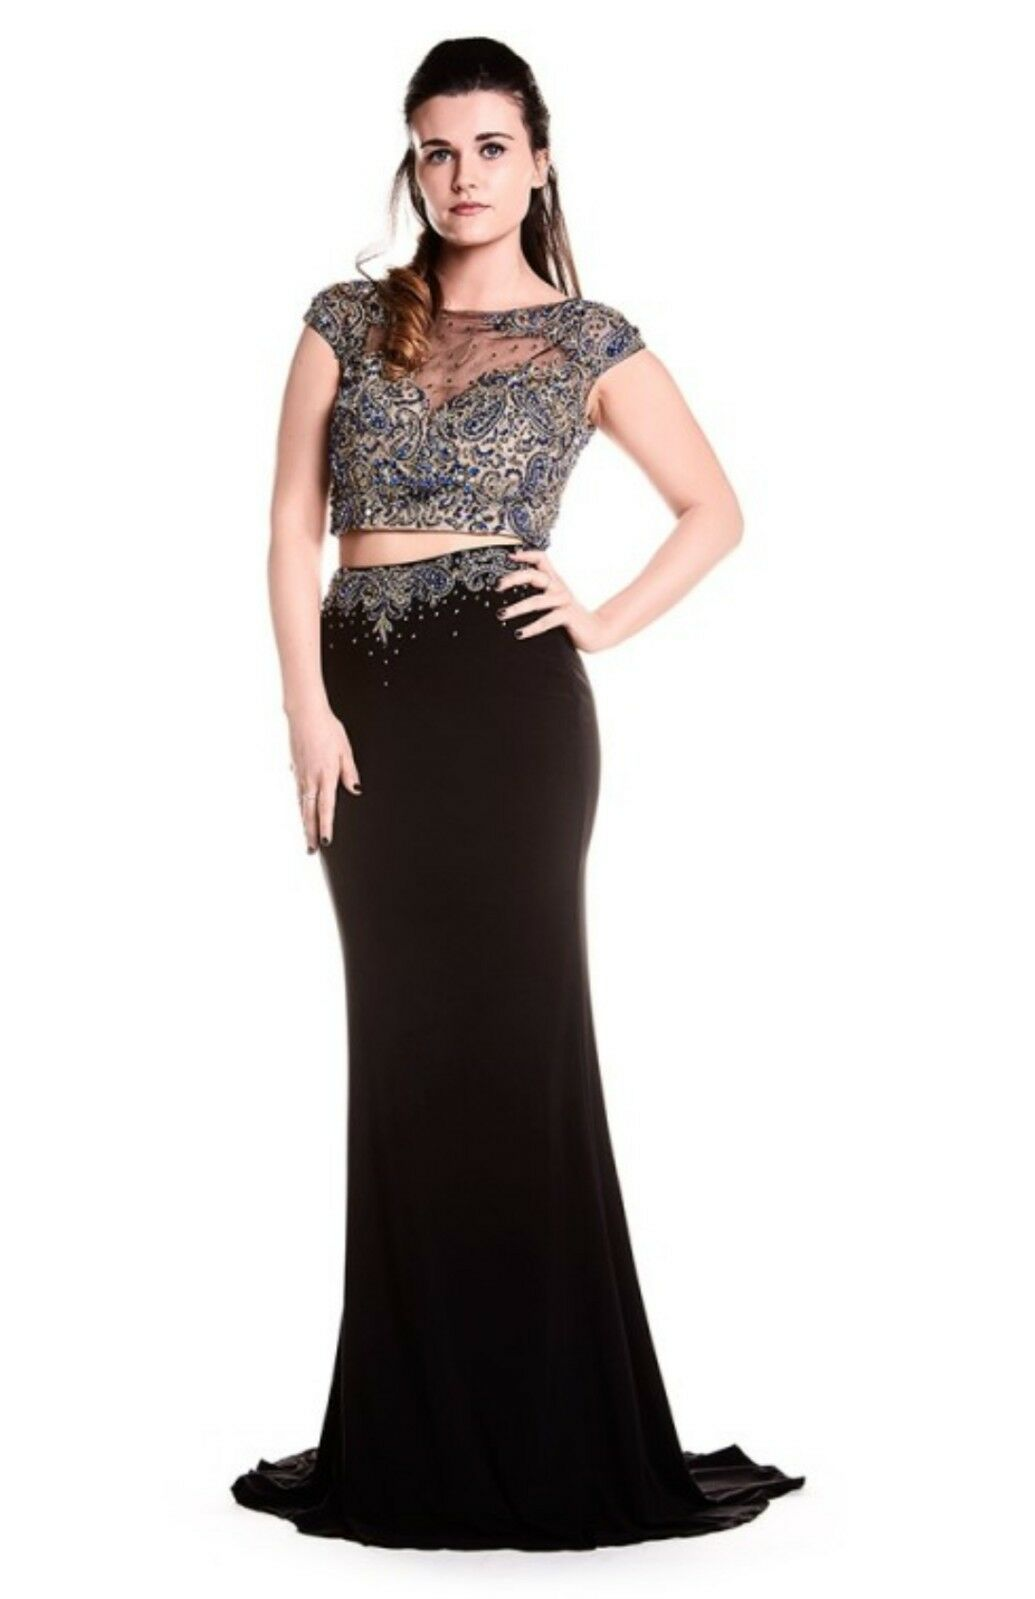 New with Tags. Designer 'Ruby' Formal Prom Dress  Size 6.  Only